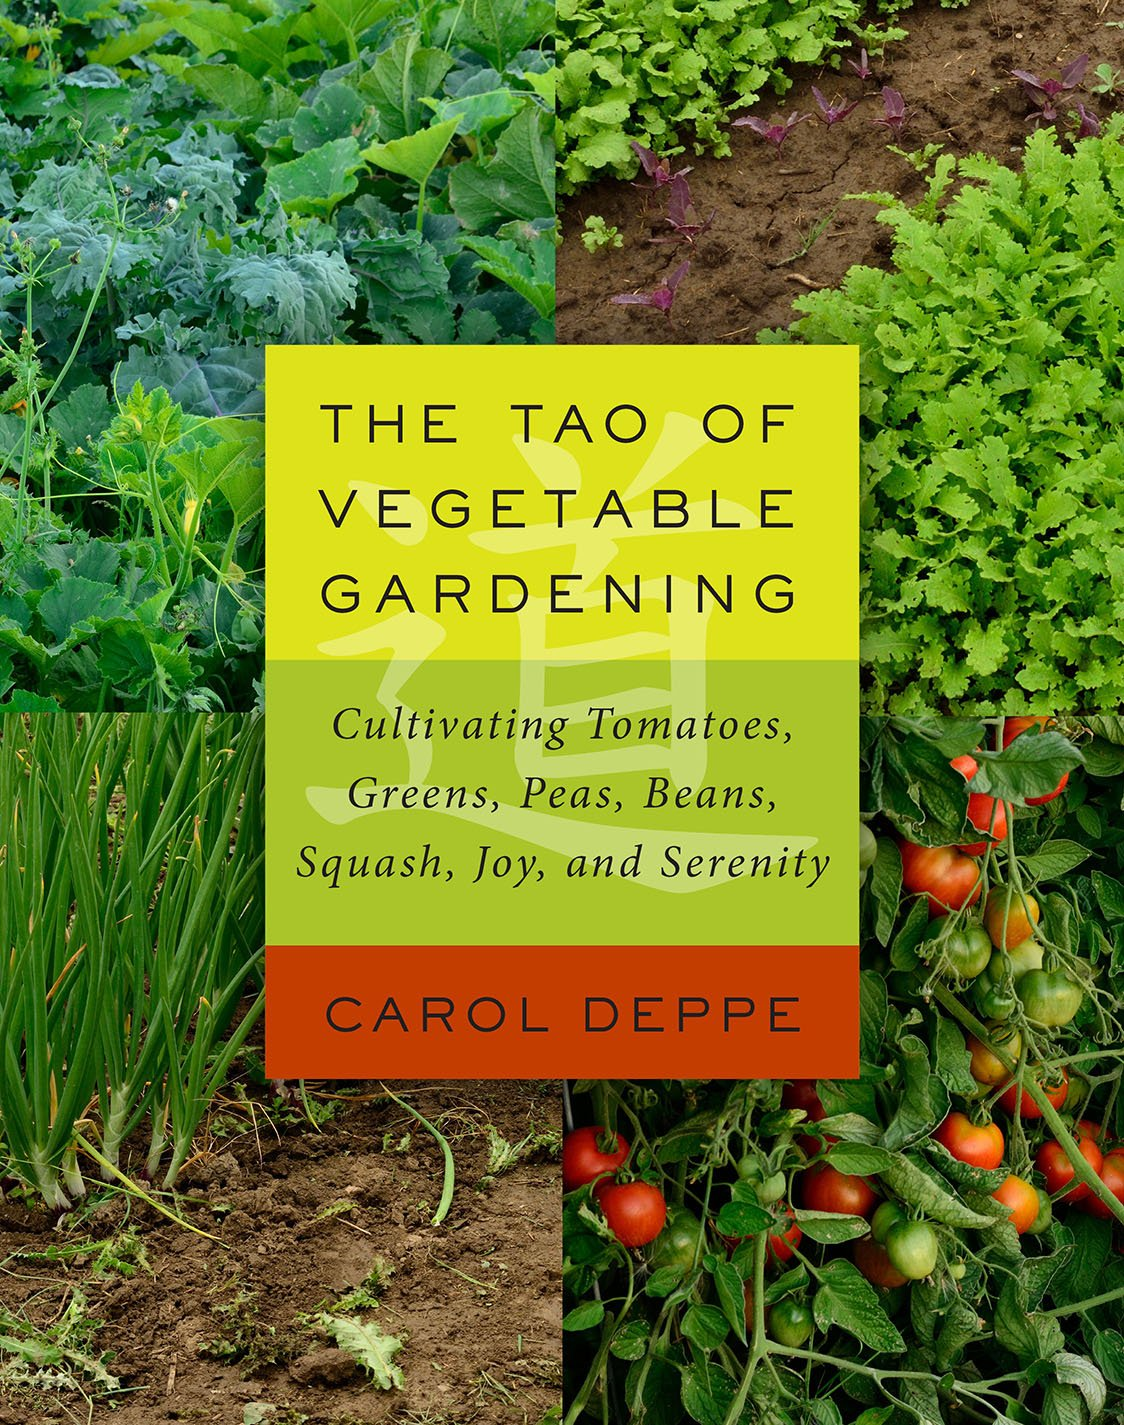 Download The Tao Of Vegetable Gardening: Cultivating Tomatoes, Greens, Peas, Beans, Squash, Joy, And Serenity 